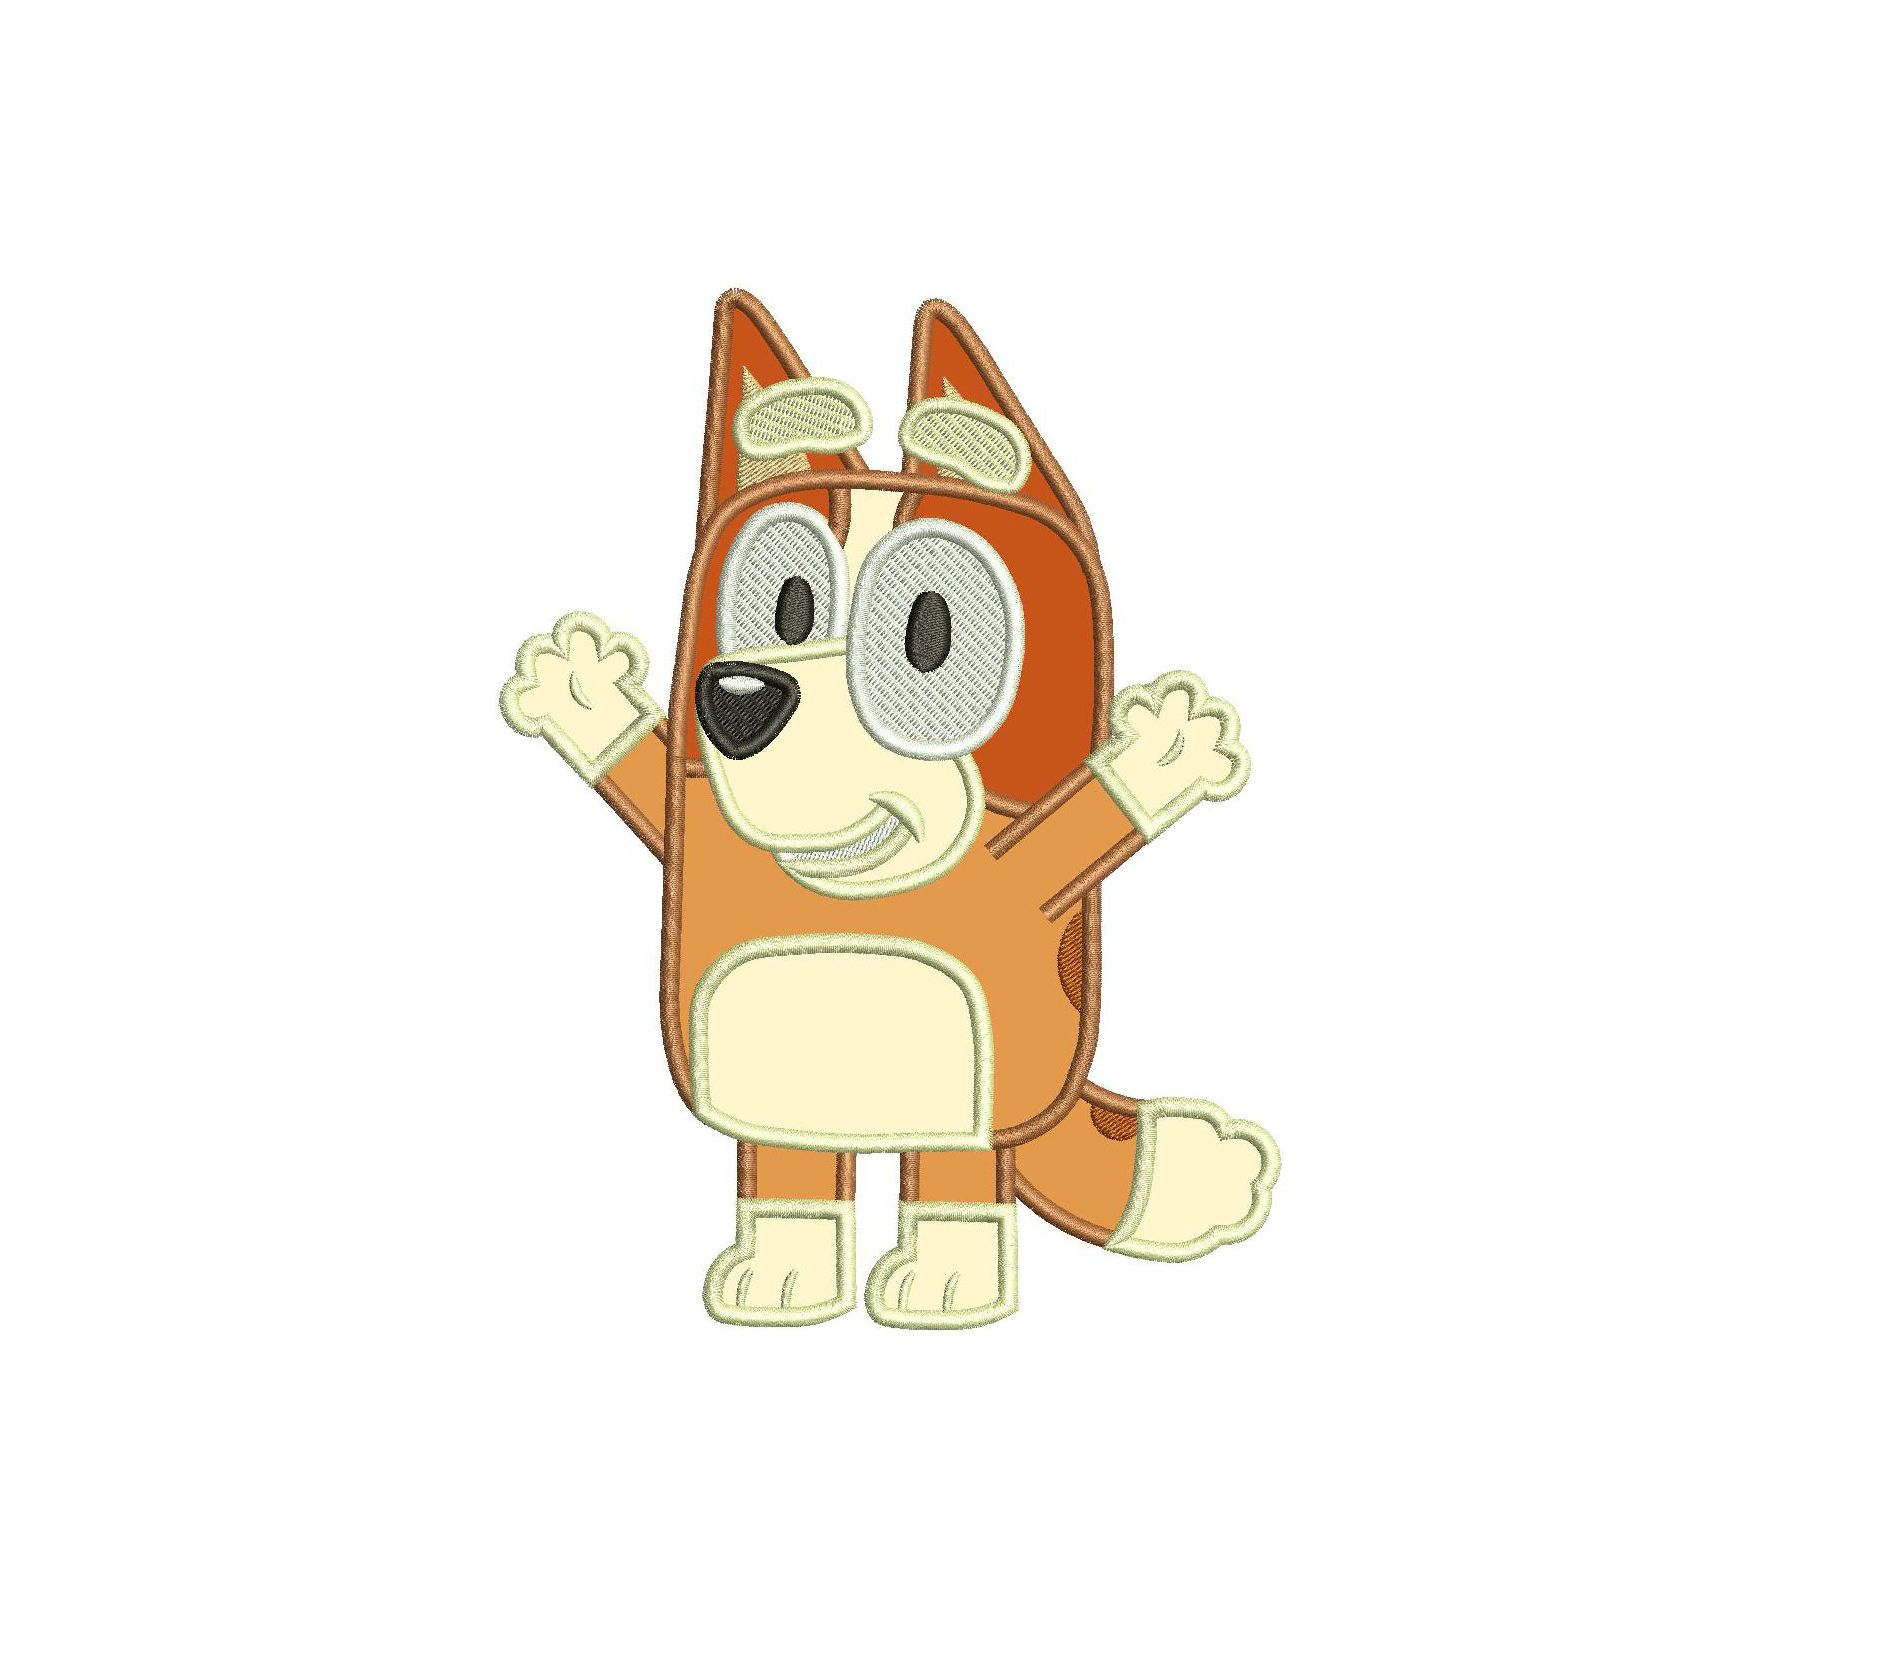 Bingo The Sister From Bluey The Dog Applique Design Applique Designs Applique Design